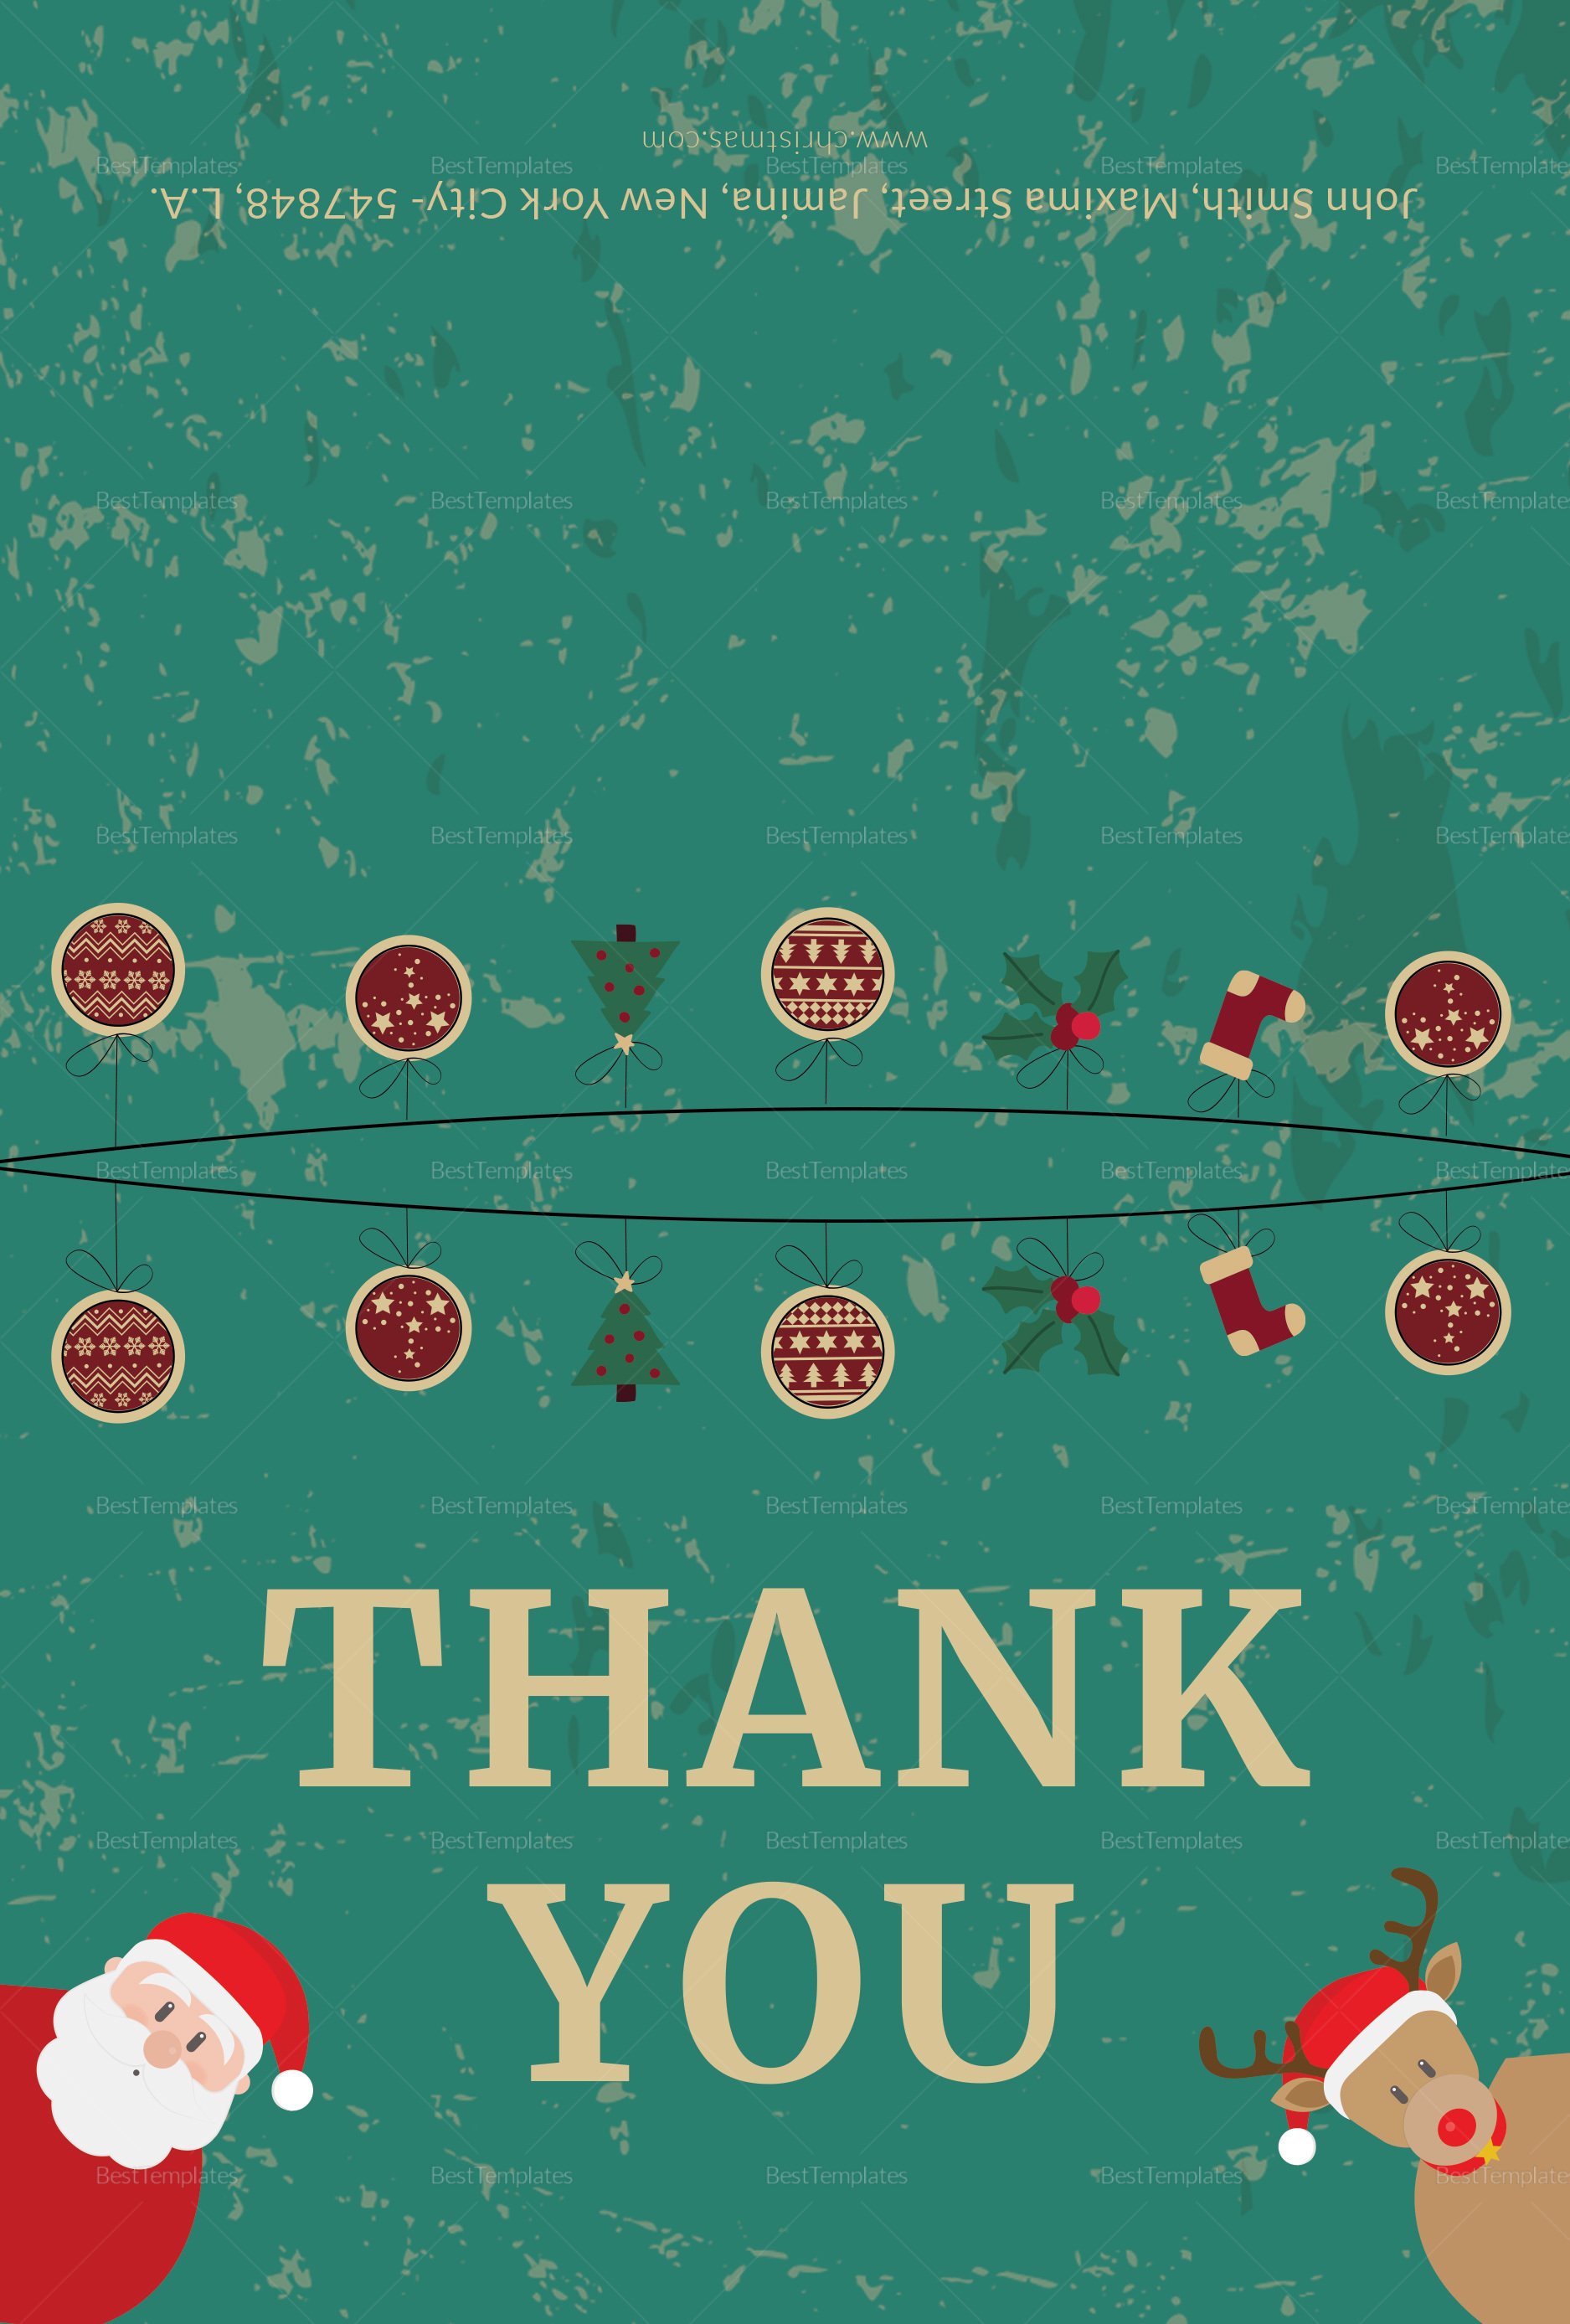 Editable Christmas Thank You Card Template In Adobe Photoshop